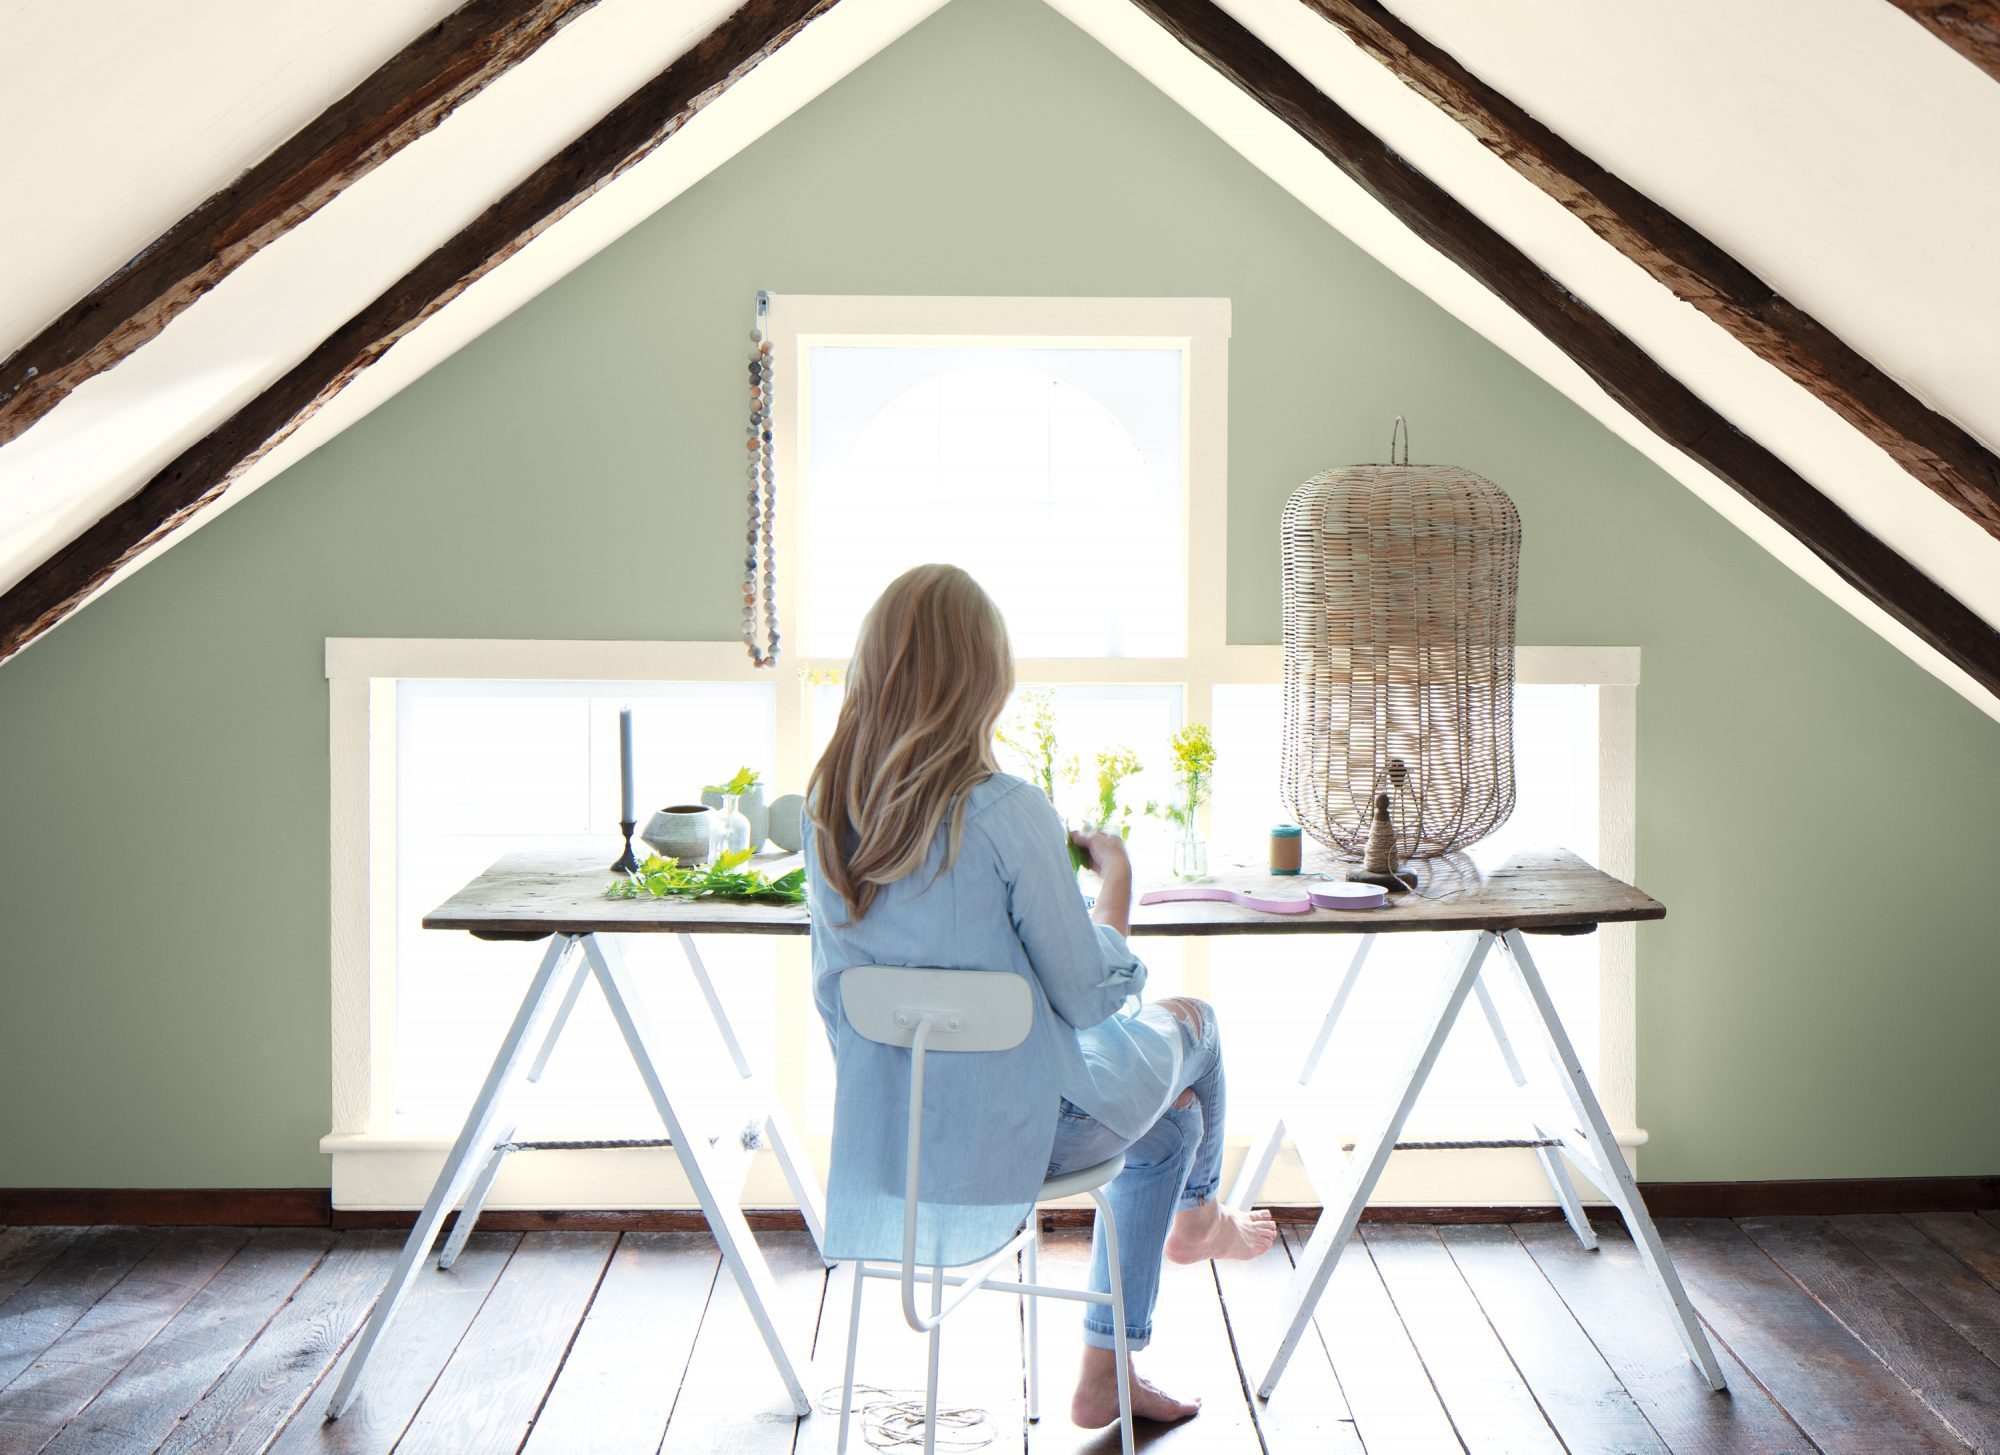 benjamin moore color of the year paint attic workspace